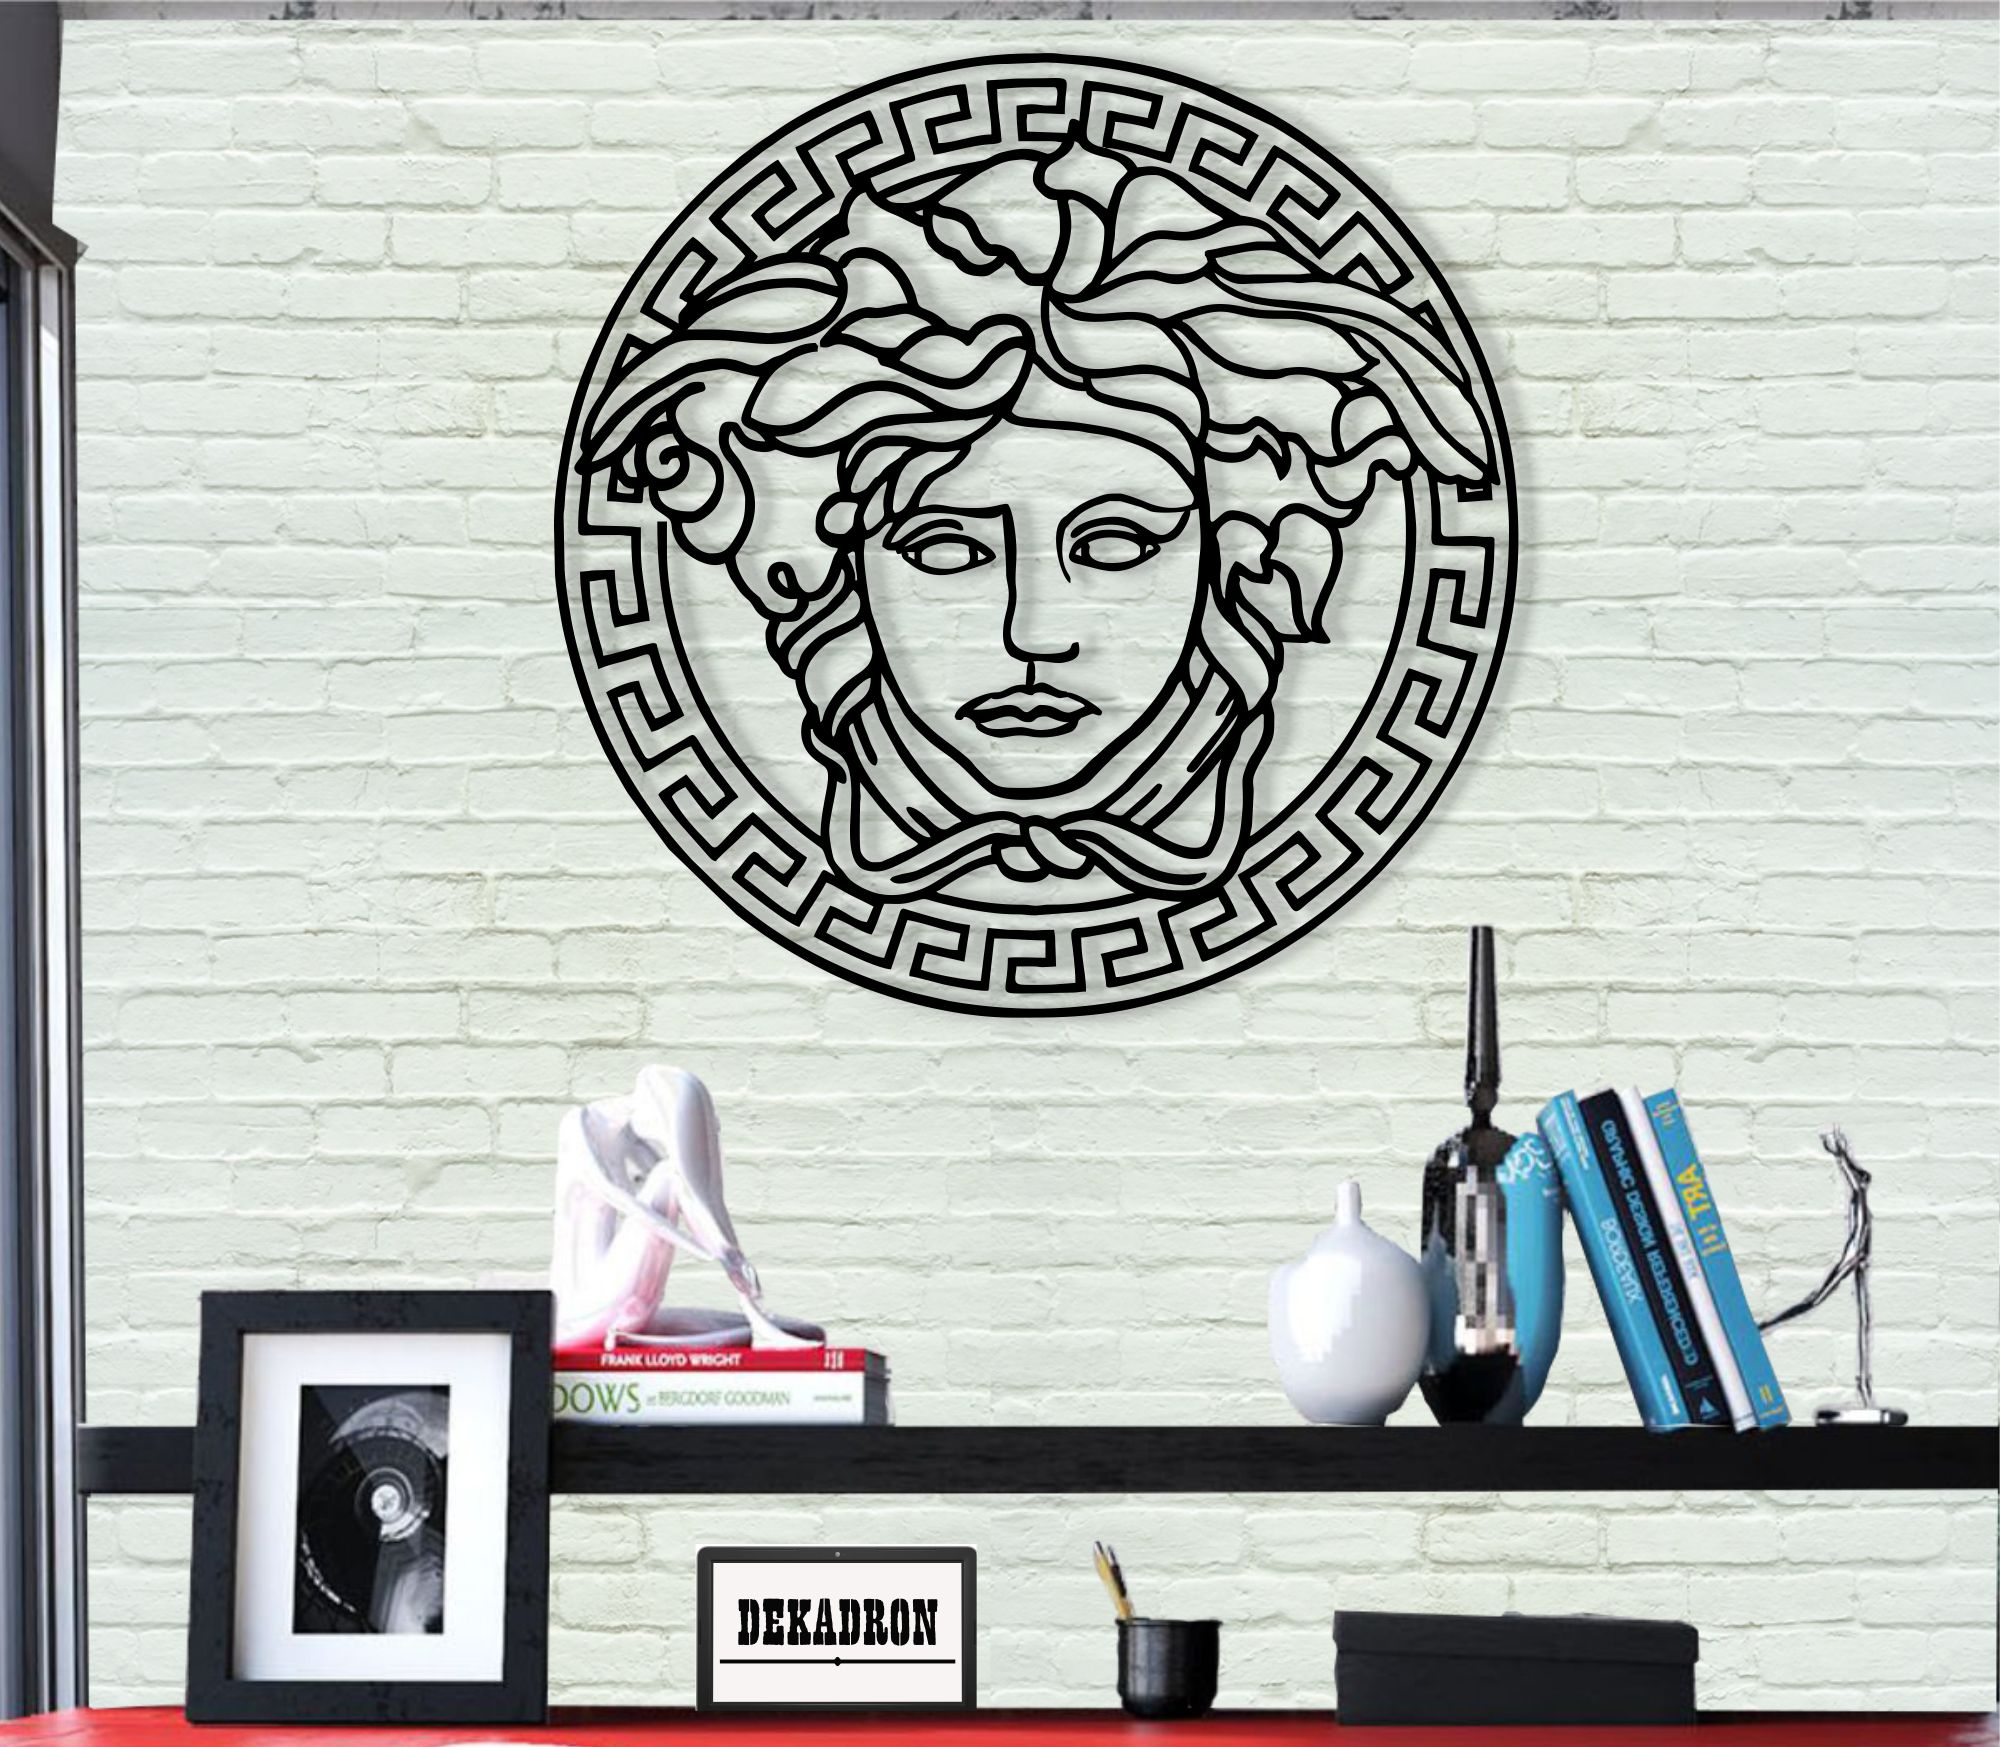 Metal Wall Art, Medusa Art, Metal Wall Decor, Home Office Decoration, Bedroom Living Room Decor, Greek Mythology Art